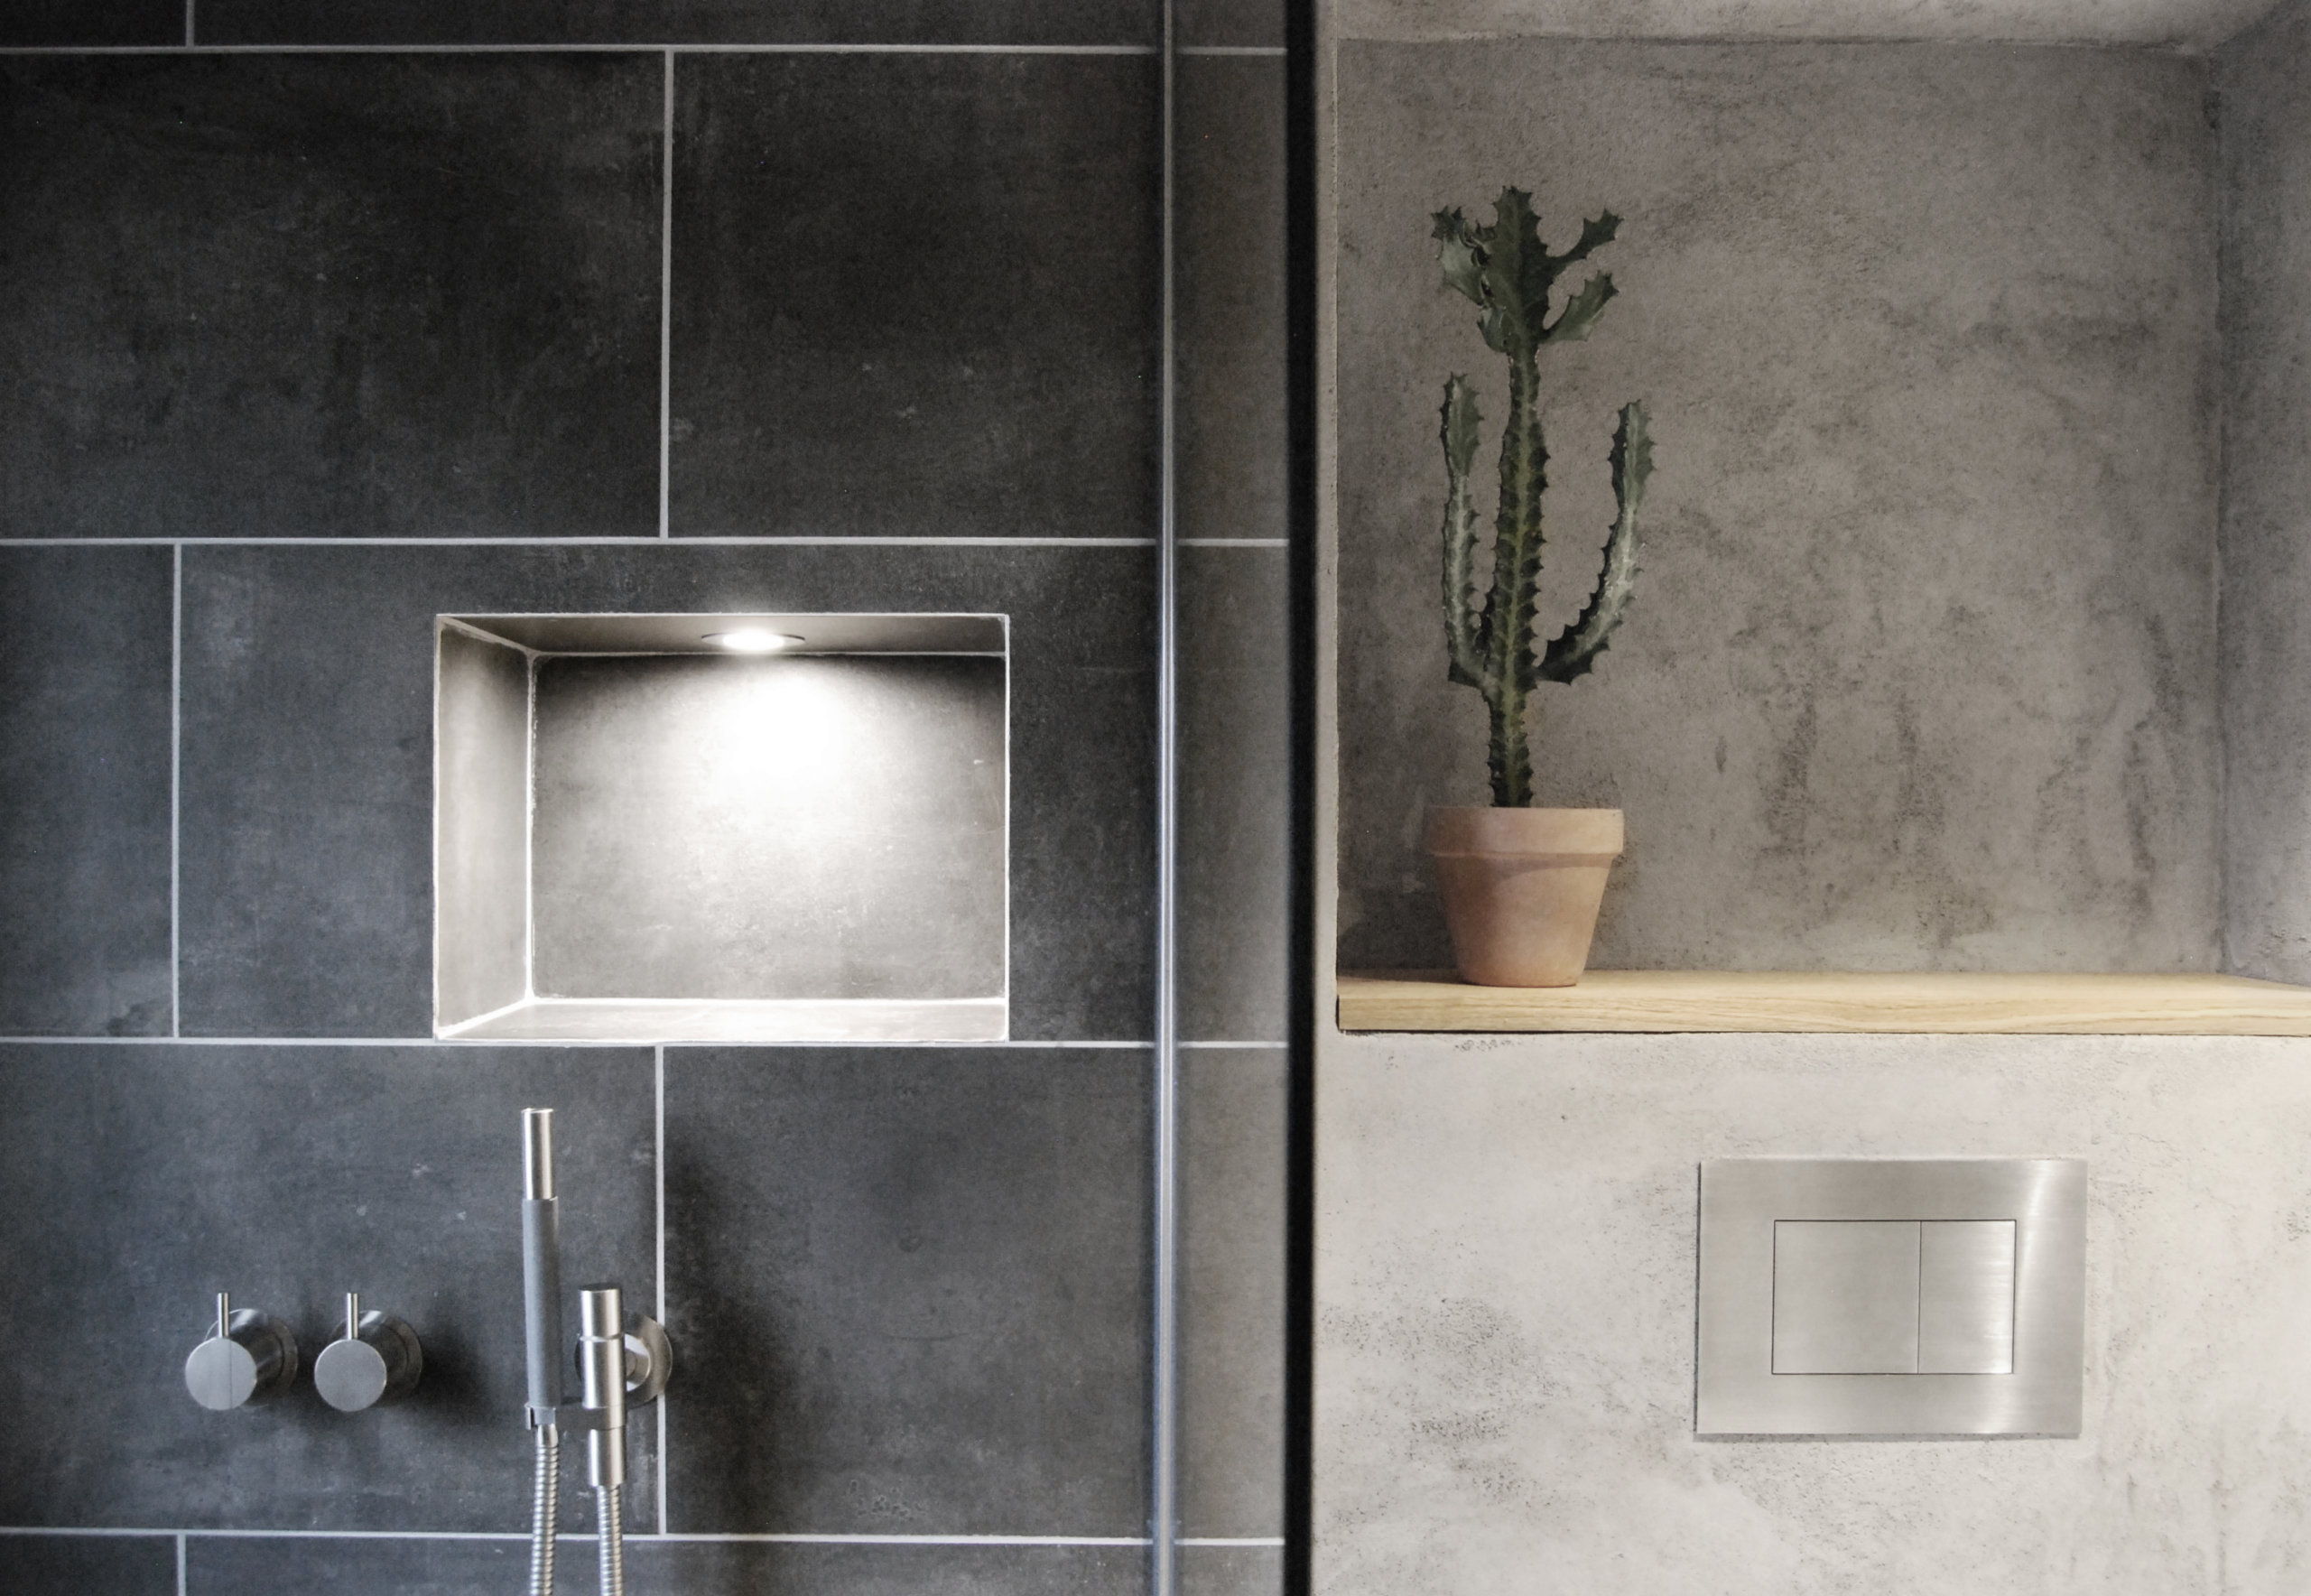 Finding-the-right-gray-tiles-for-your-bathroom-and-shower-area-39419-scaled